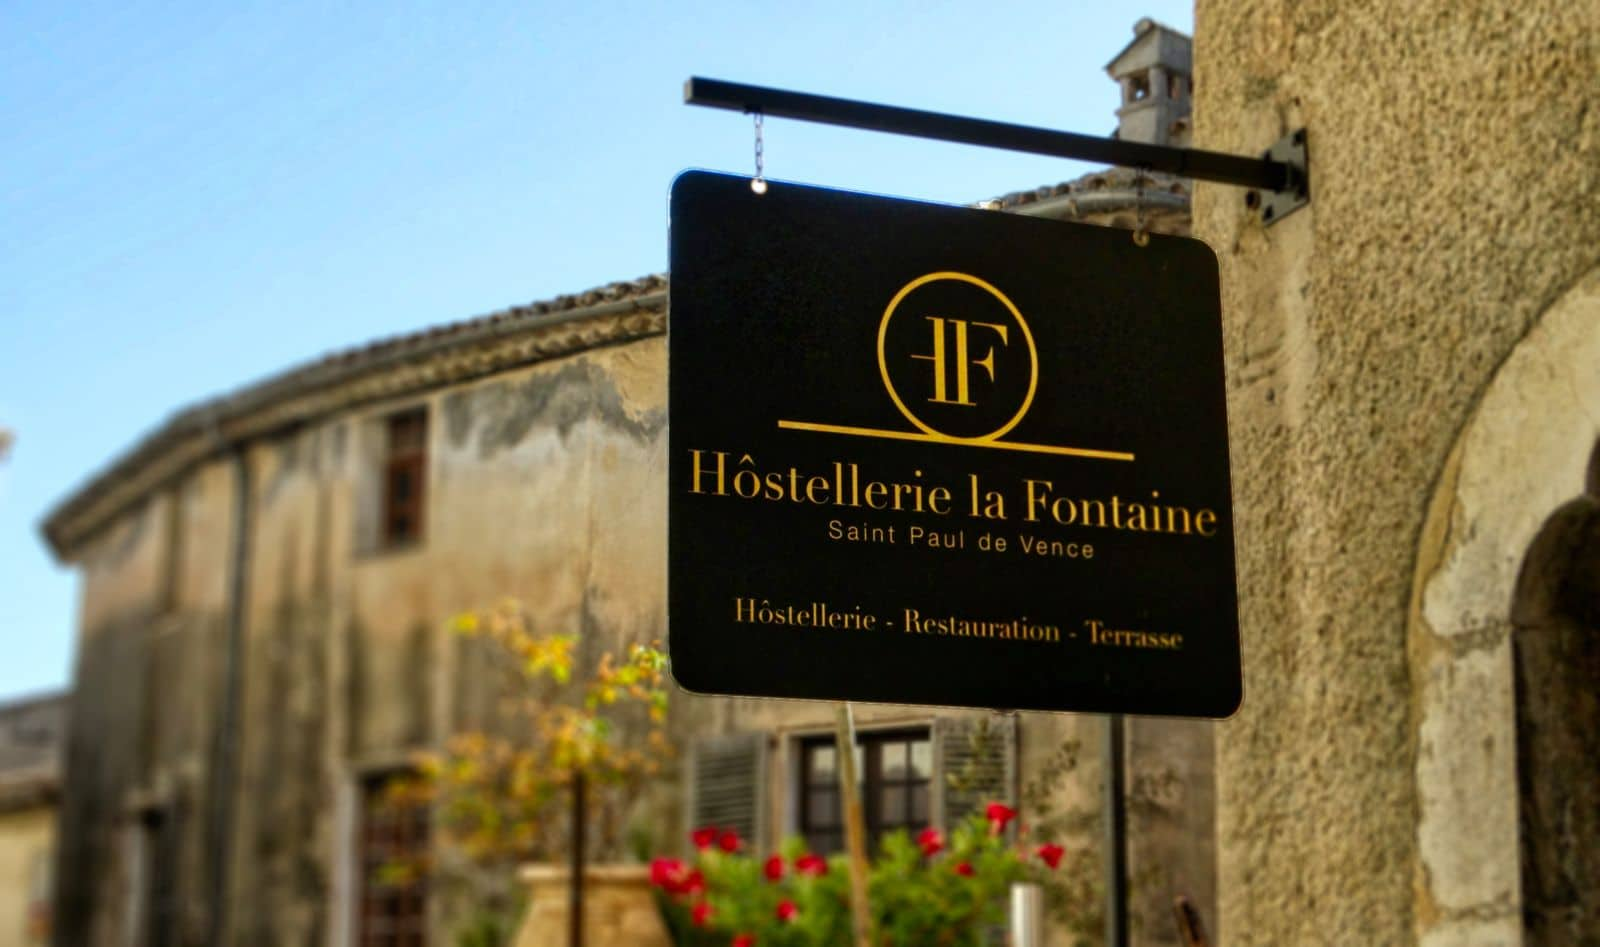 enseigne-restaurants-saint-paul-de-vence-hostellerie-la-fontaine